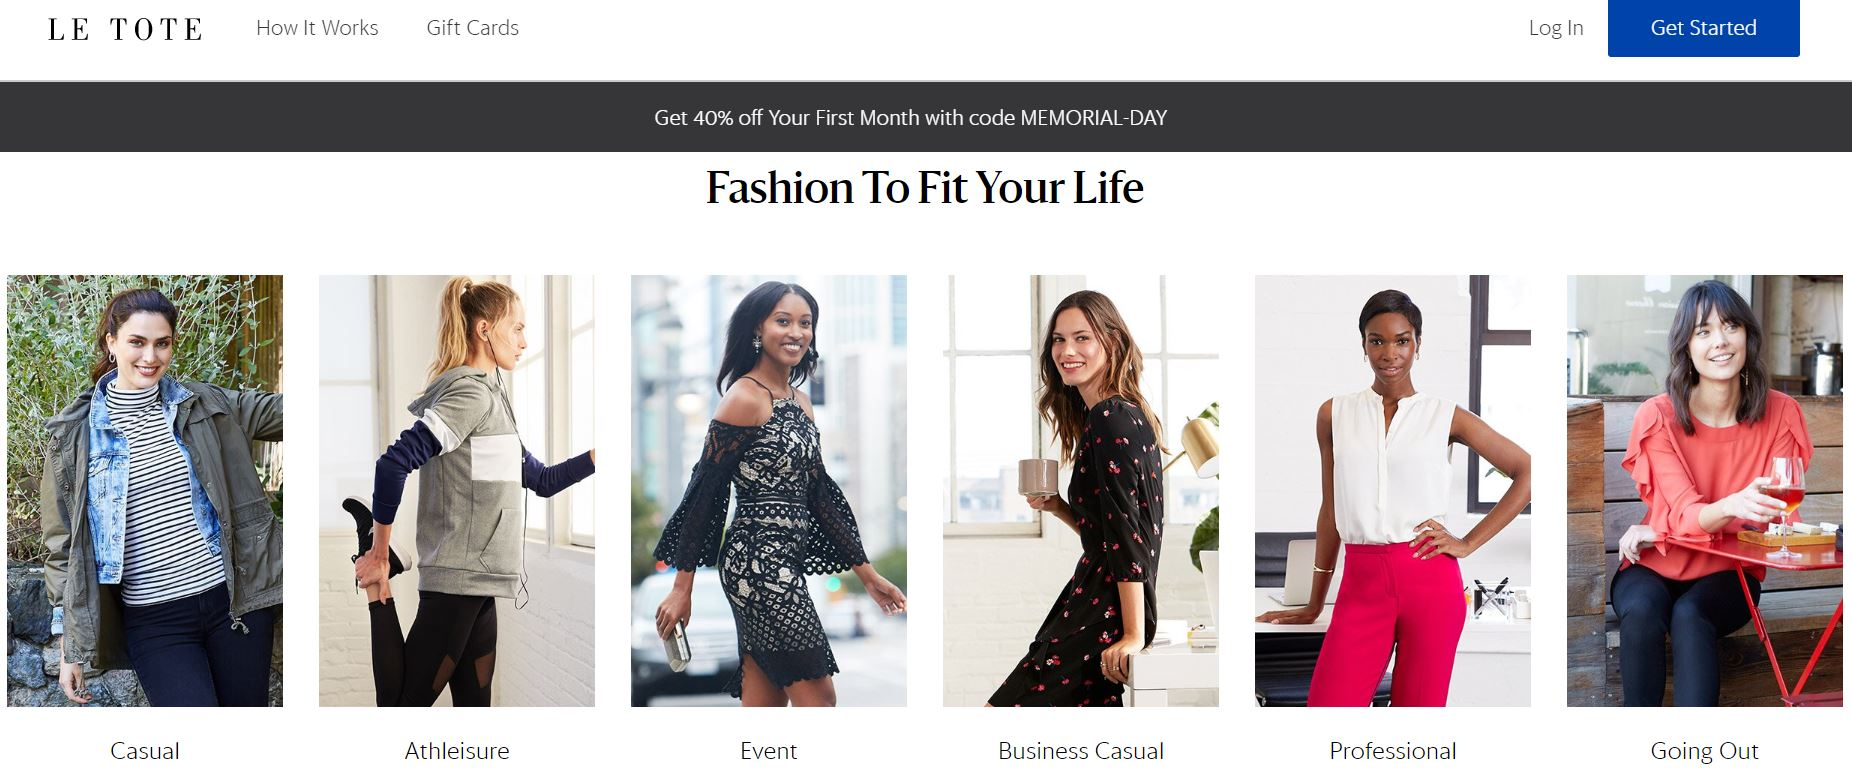 Le Tote subscription rental clothing model